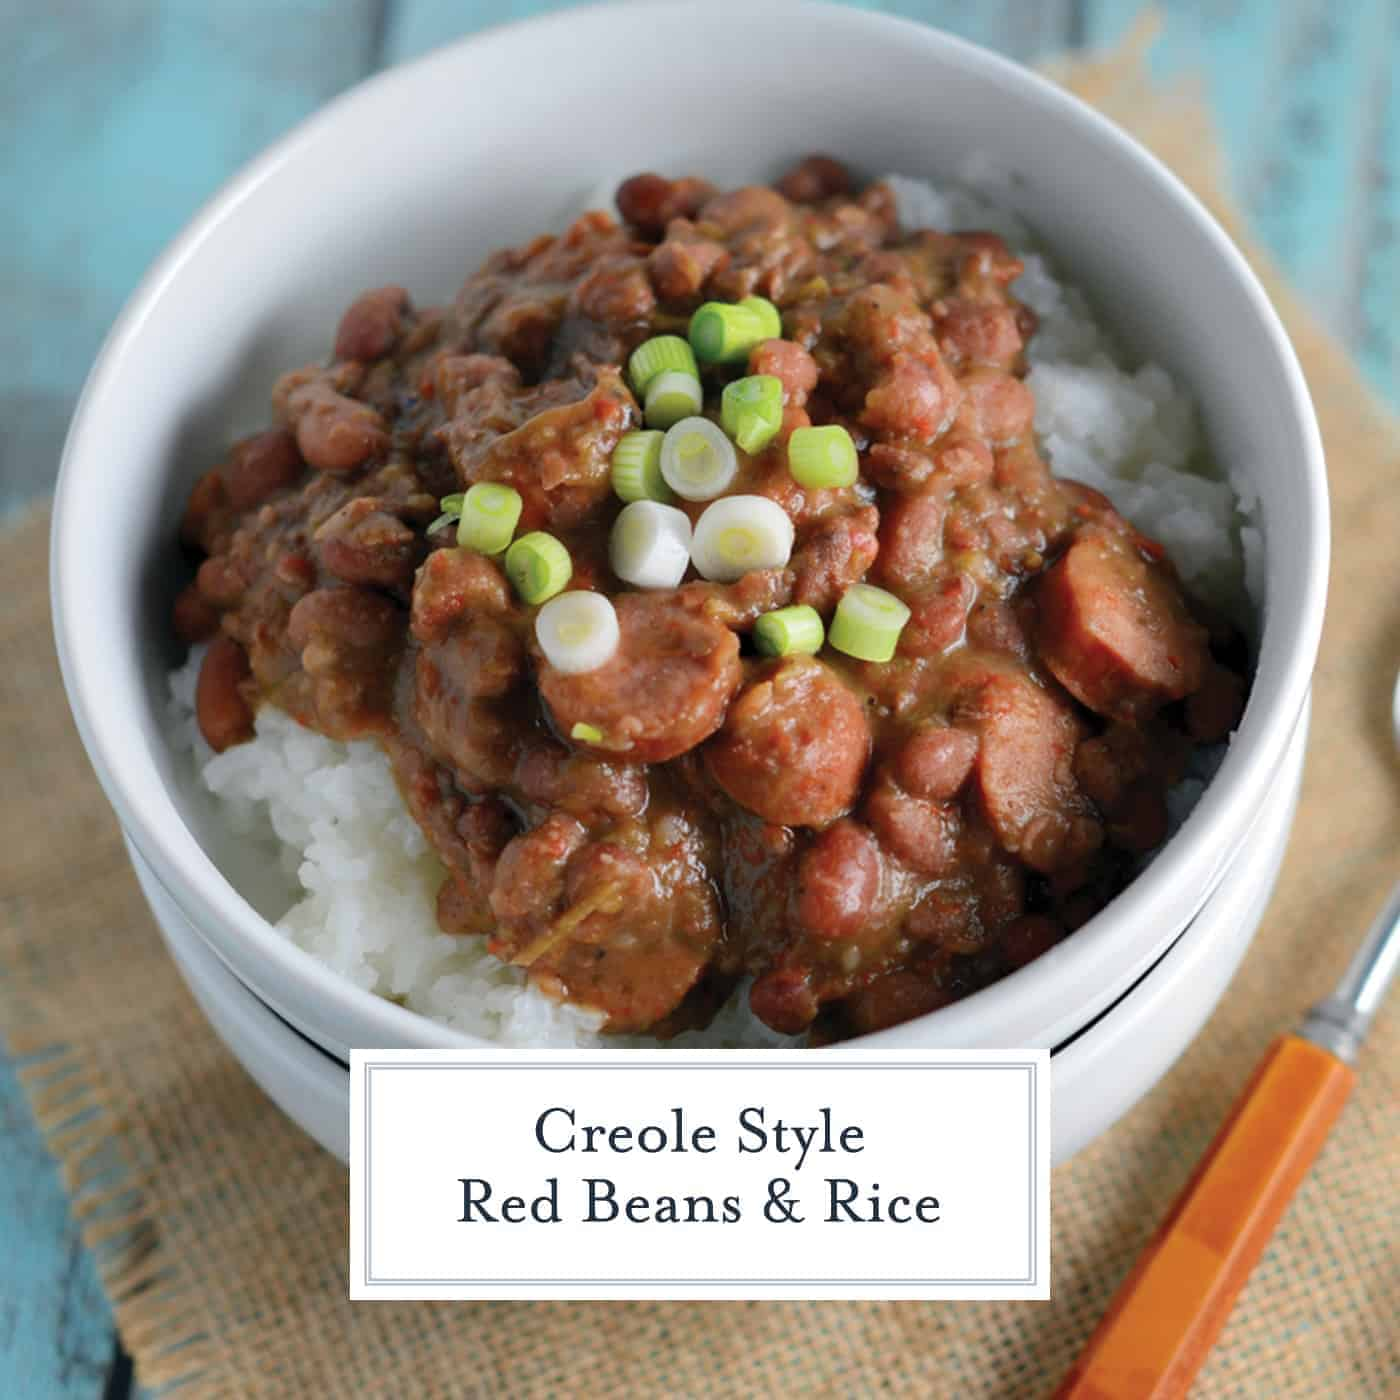 Red Beans and Rice is a classic Carnival and Mardi Gras dish straight from New Orleans. Find the trick for the perfect texture in this recipe! #redbeansandrice #mardigras #creolefood www.savoryexperiments.com